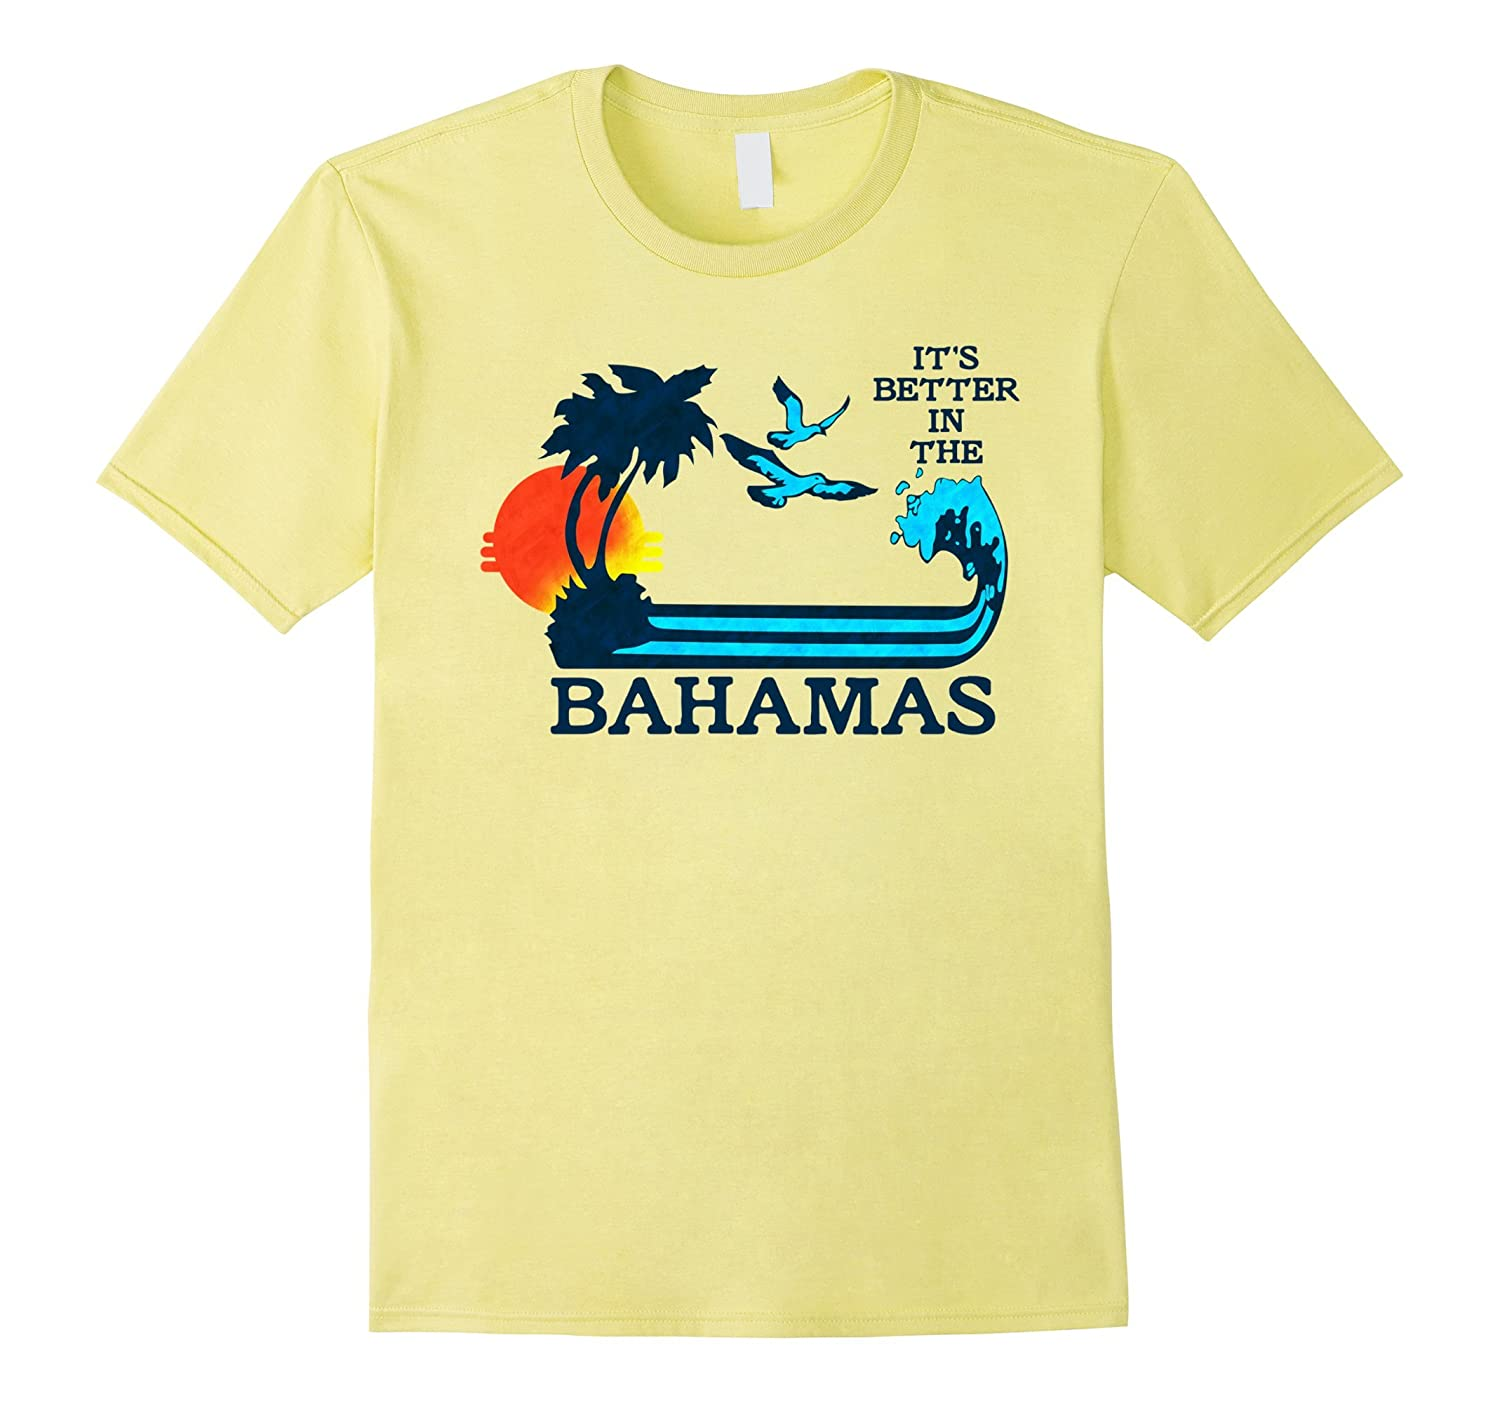 377ee07f40a2b Its Better in the Bahamas Vintage 80s 70s T-Shirt-RT